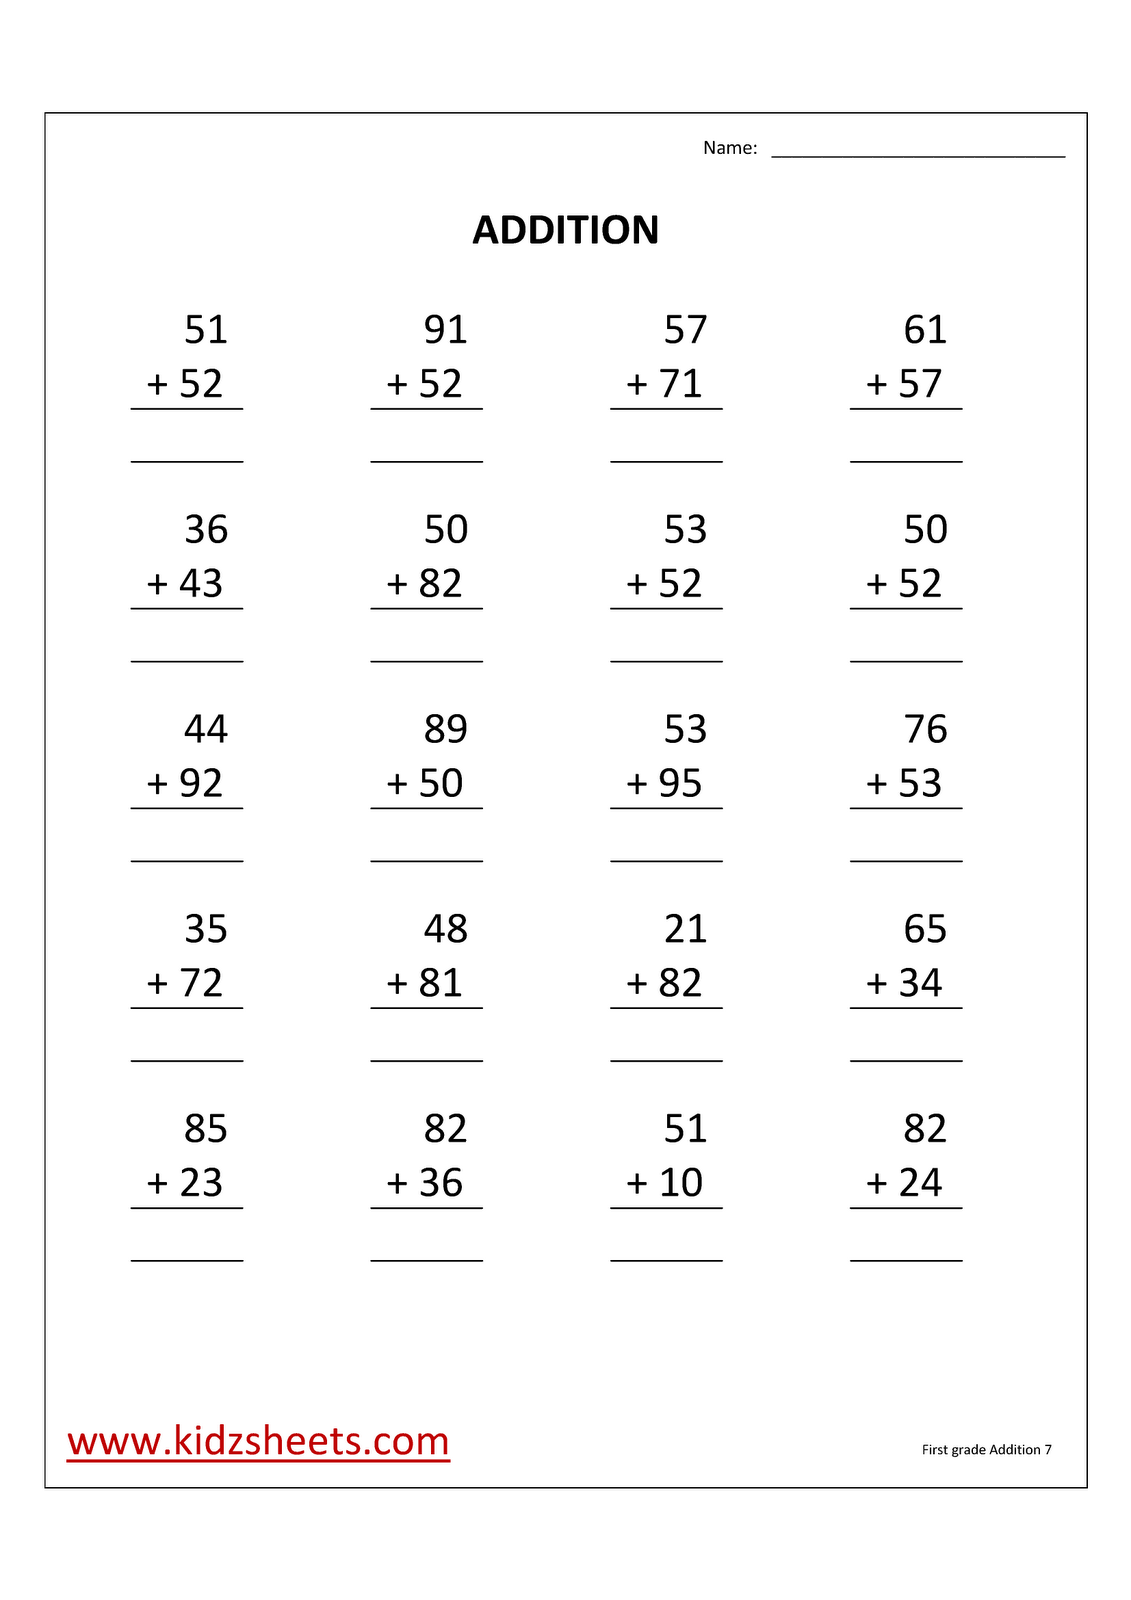 Kidz Worksheets First Grade Addition Worksheet7